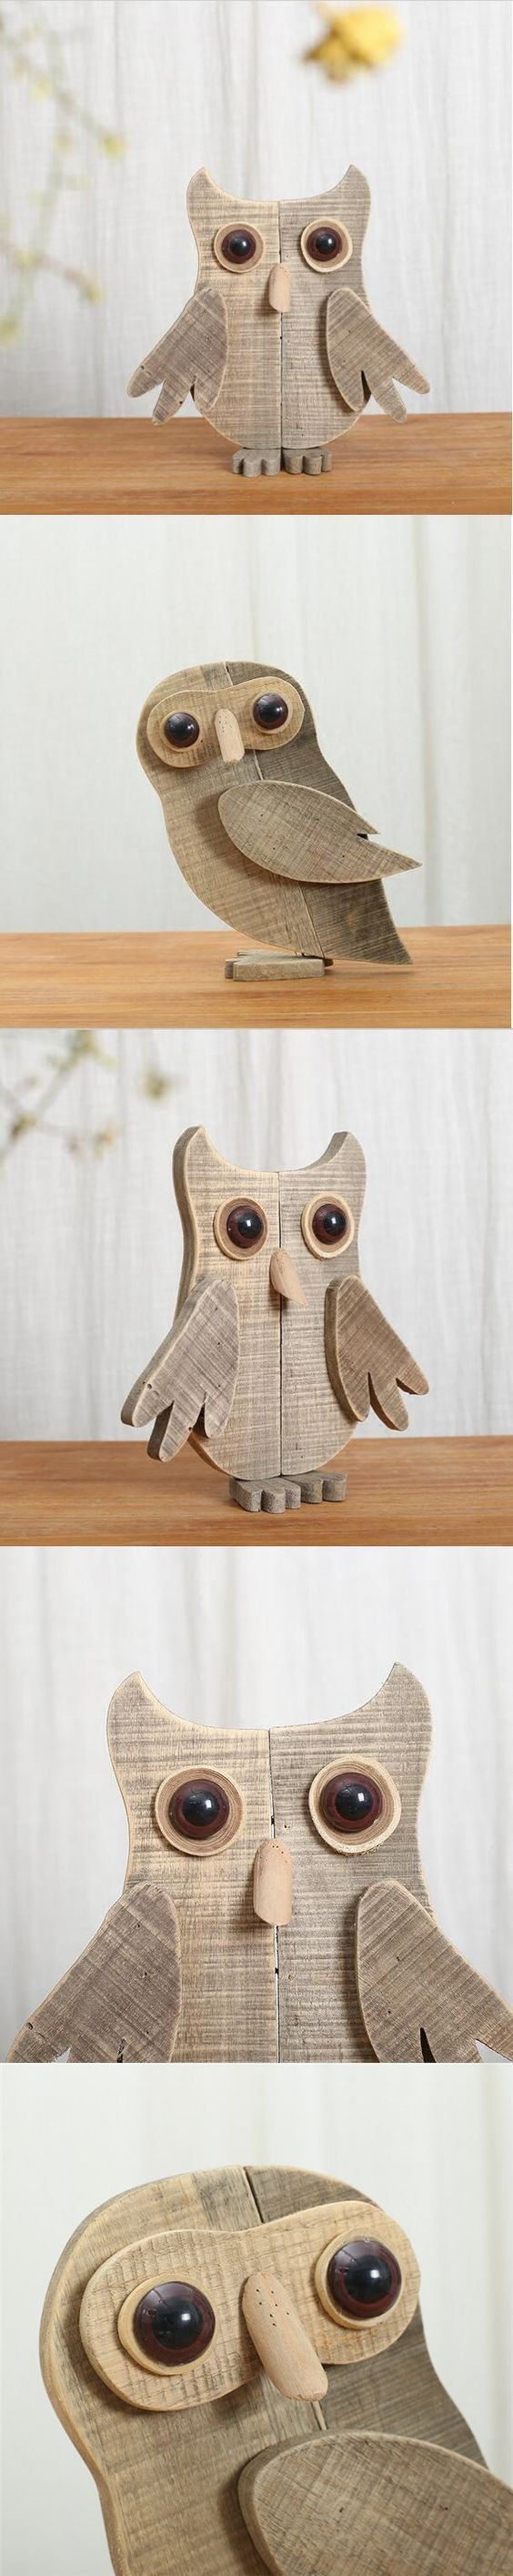 Modern wood table animal crossing - Simple Original Modern Wooden Animal Desktop Ornaments Handmade Abstract Wood Owl Figurine New Creative Home Decorations